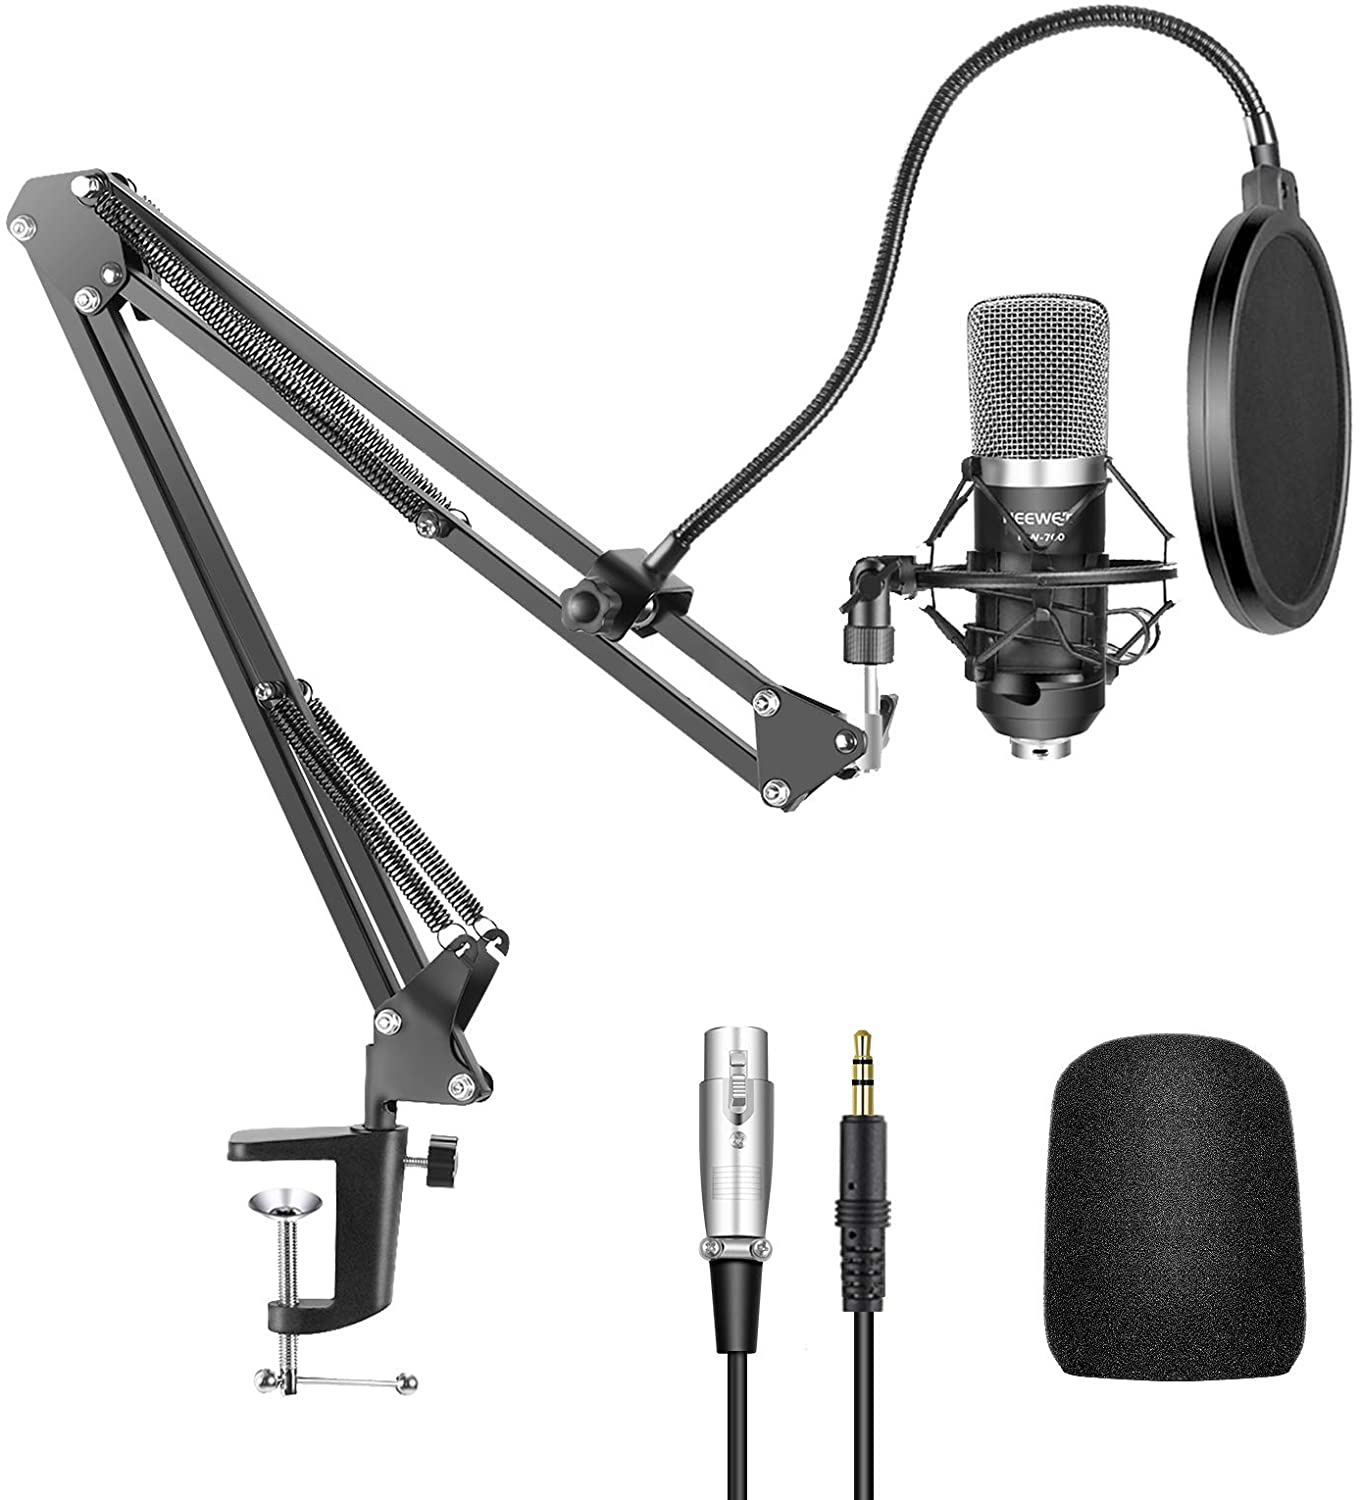 neewer NW 700 - 9 Best Cheap Mic for Gaming 2021